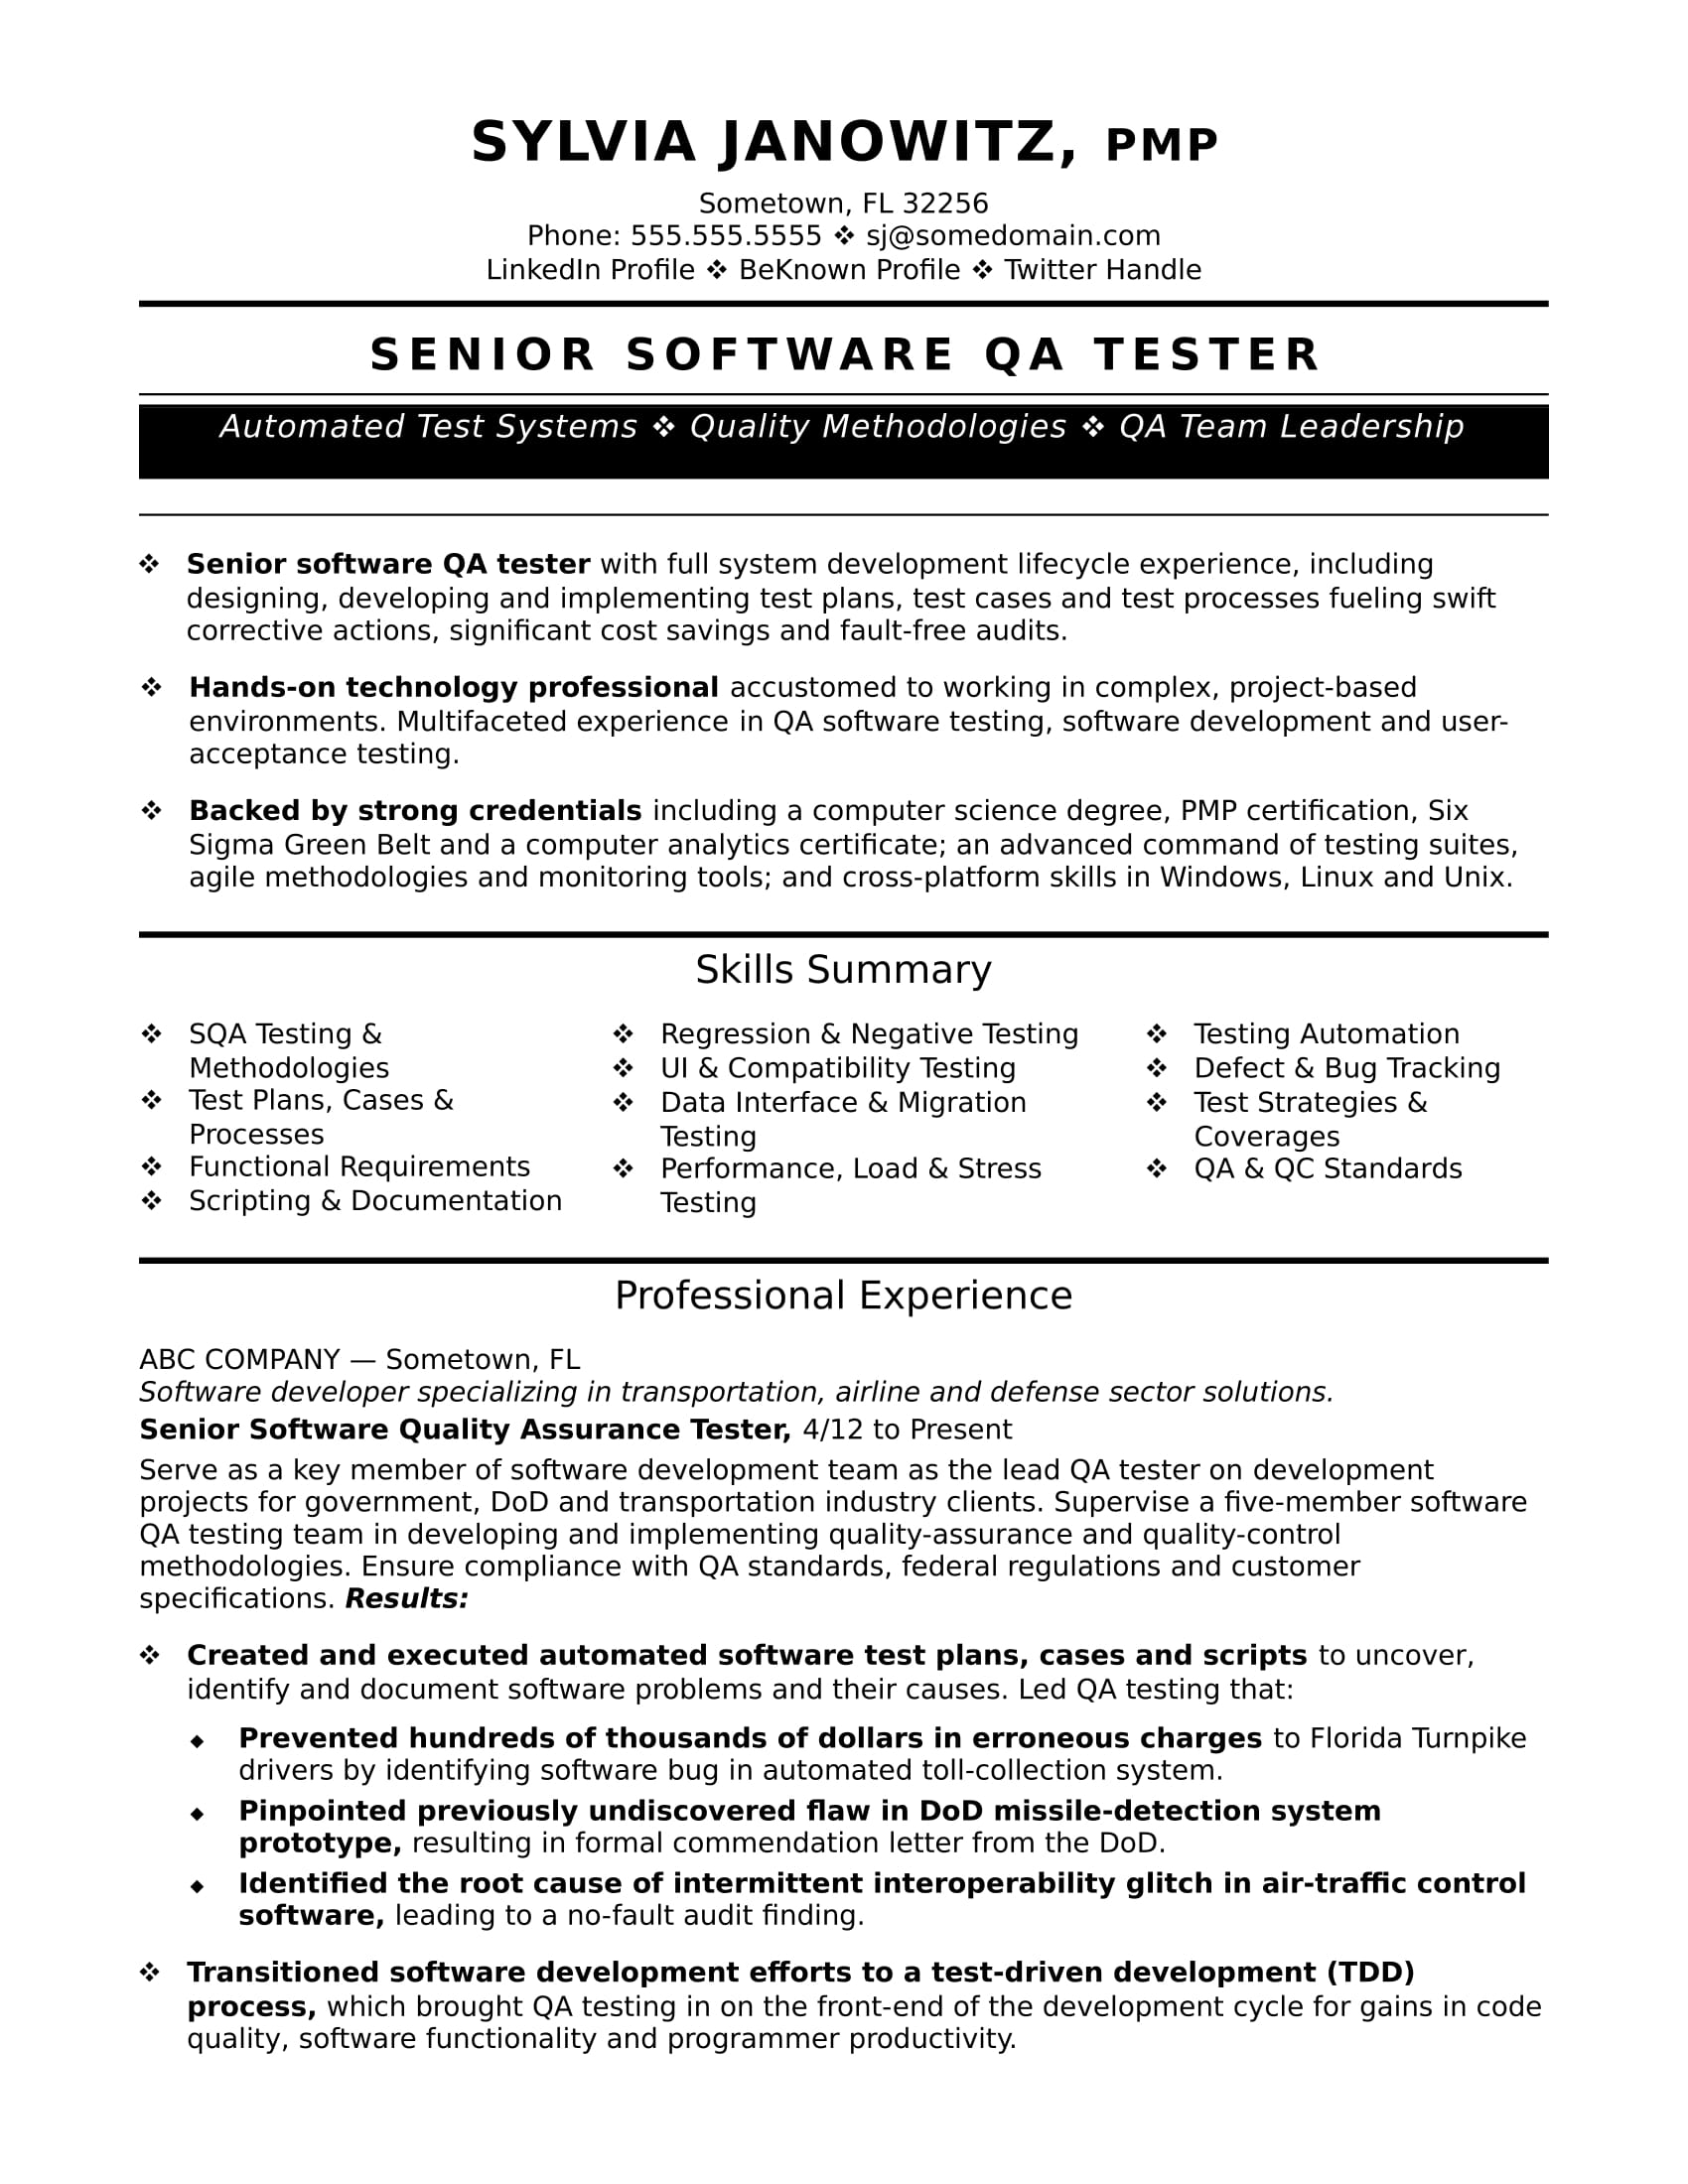 Experienced QA Software Tester Resume Sample  Quality Assurance Analyst Resume